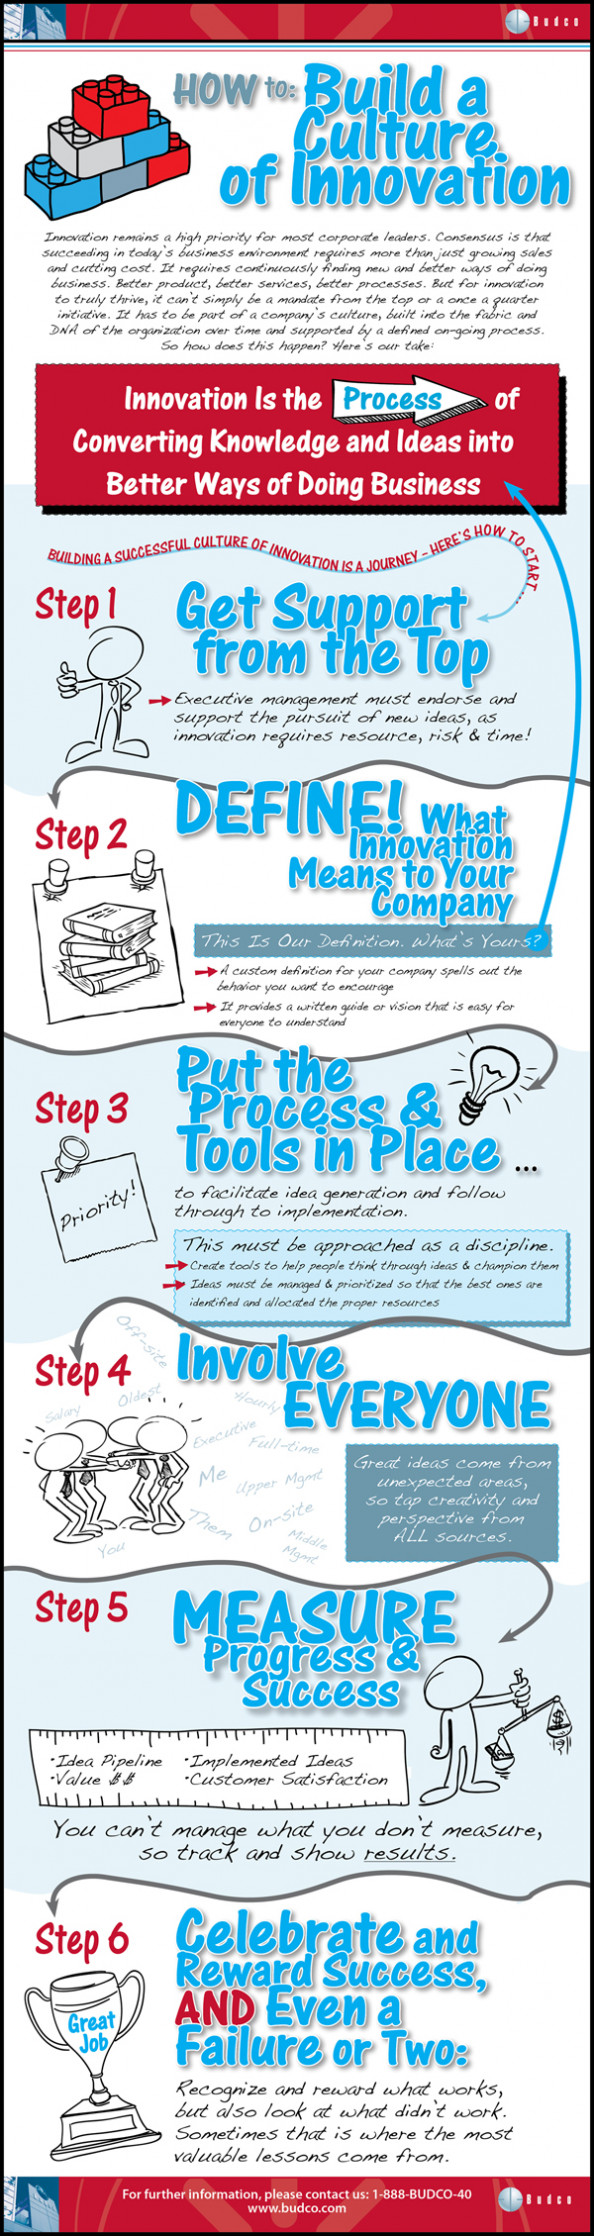 Building a Culture of Innovation Infographic